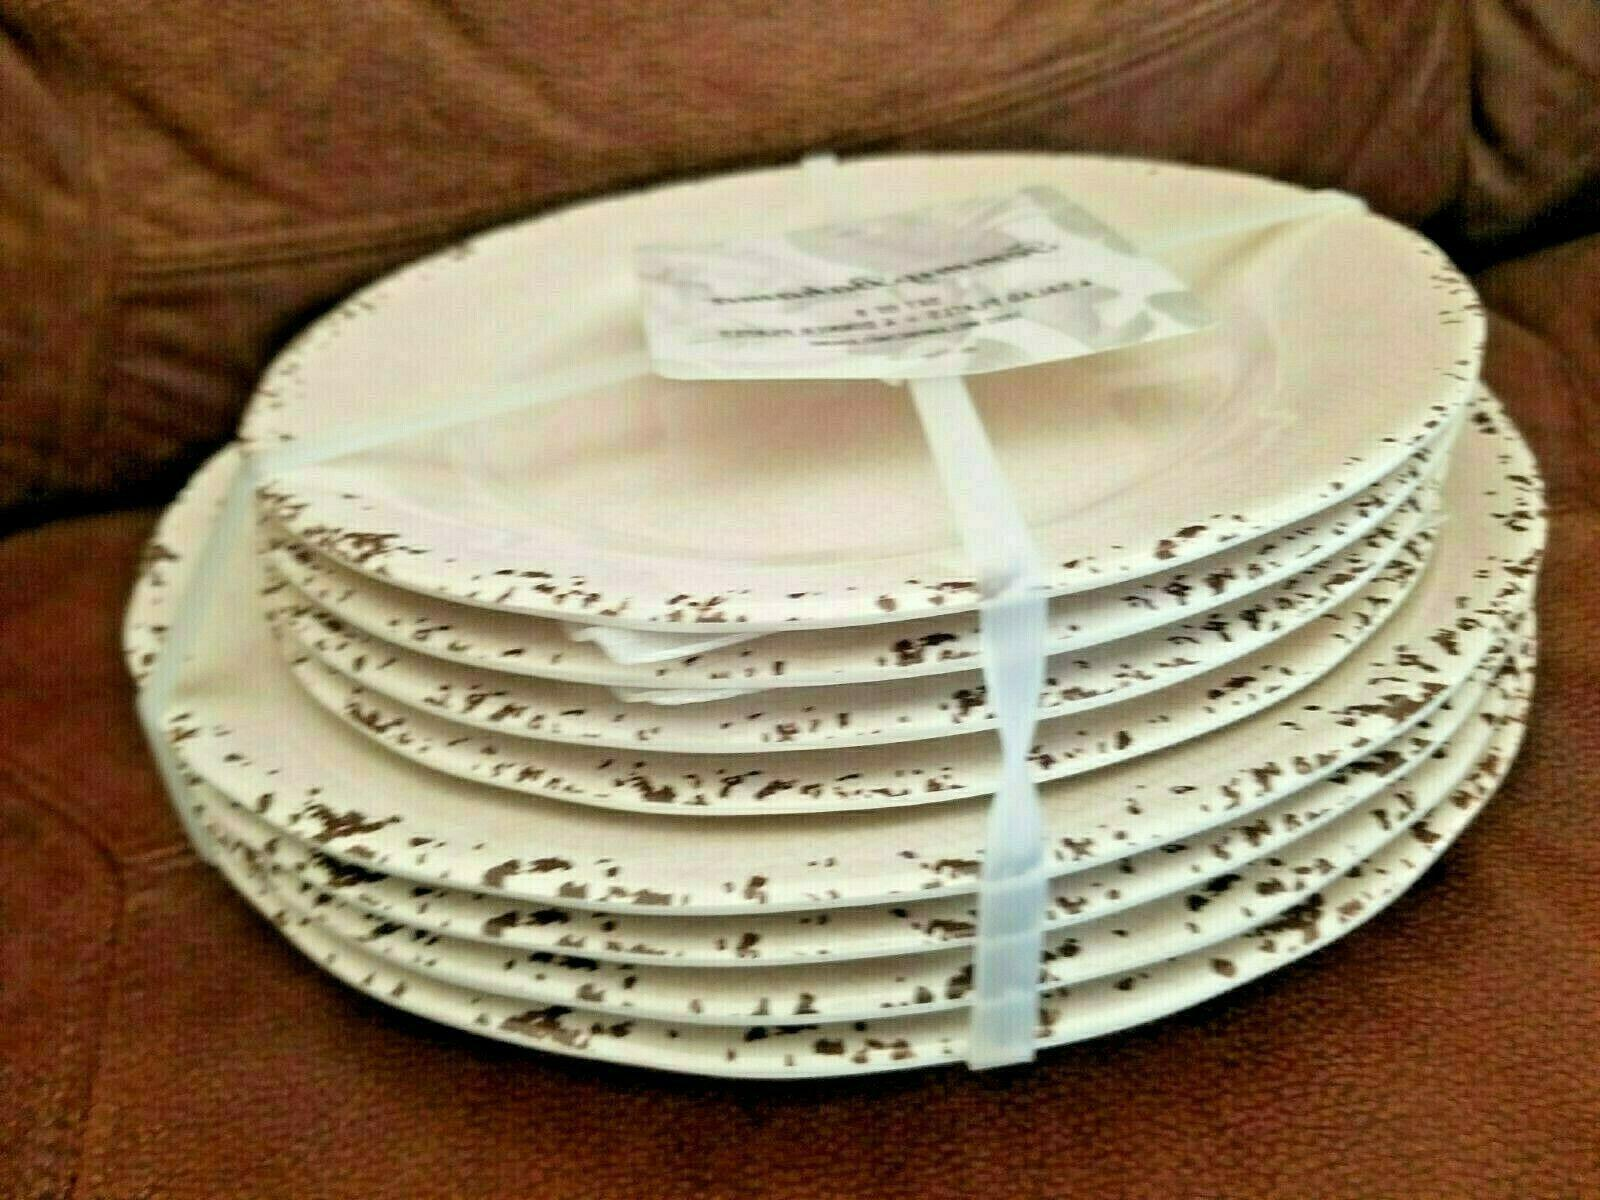 TOMMY RUSTIC MELAMINE 4 4 SALAD FREE SHIPPING